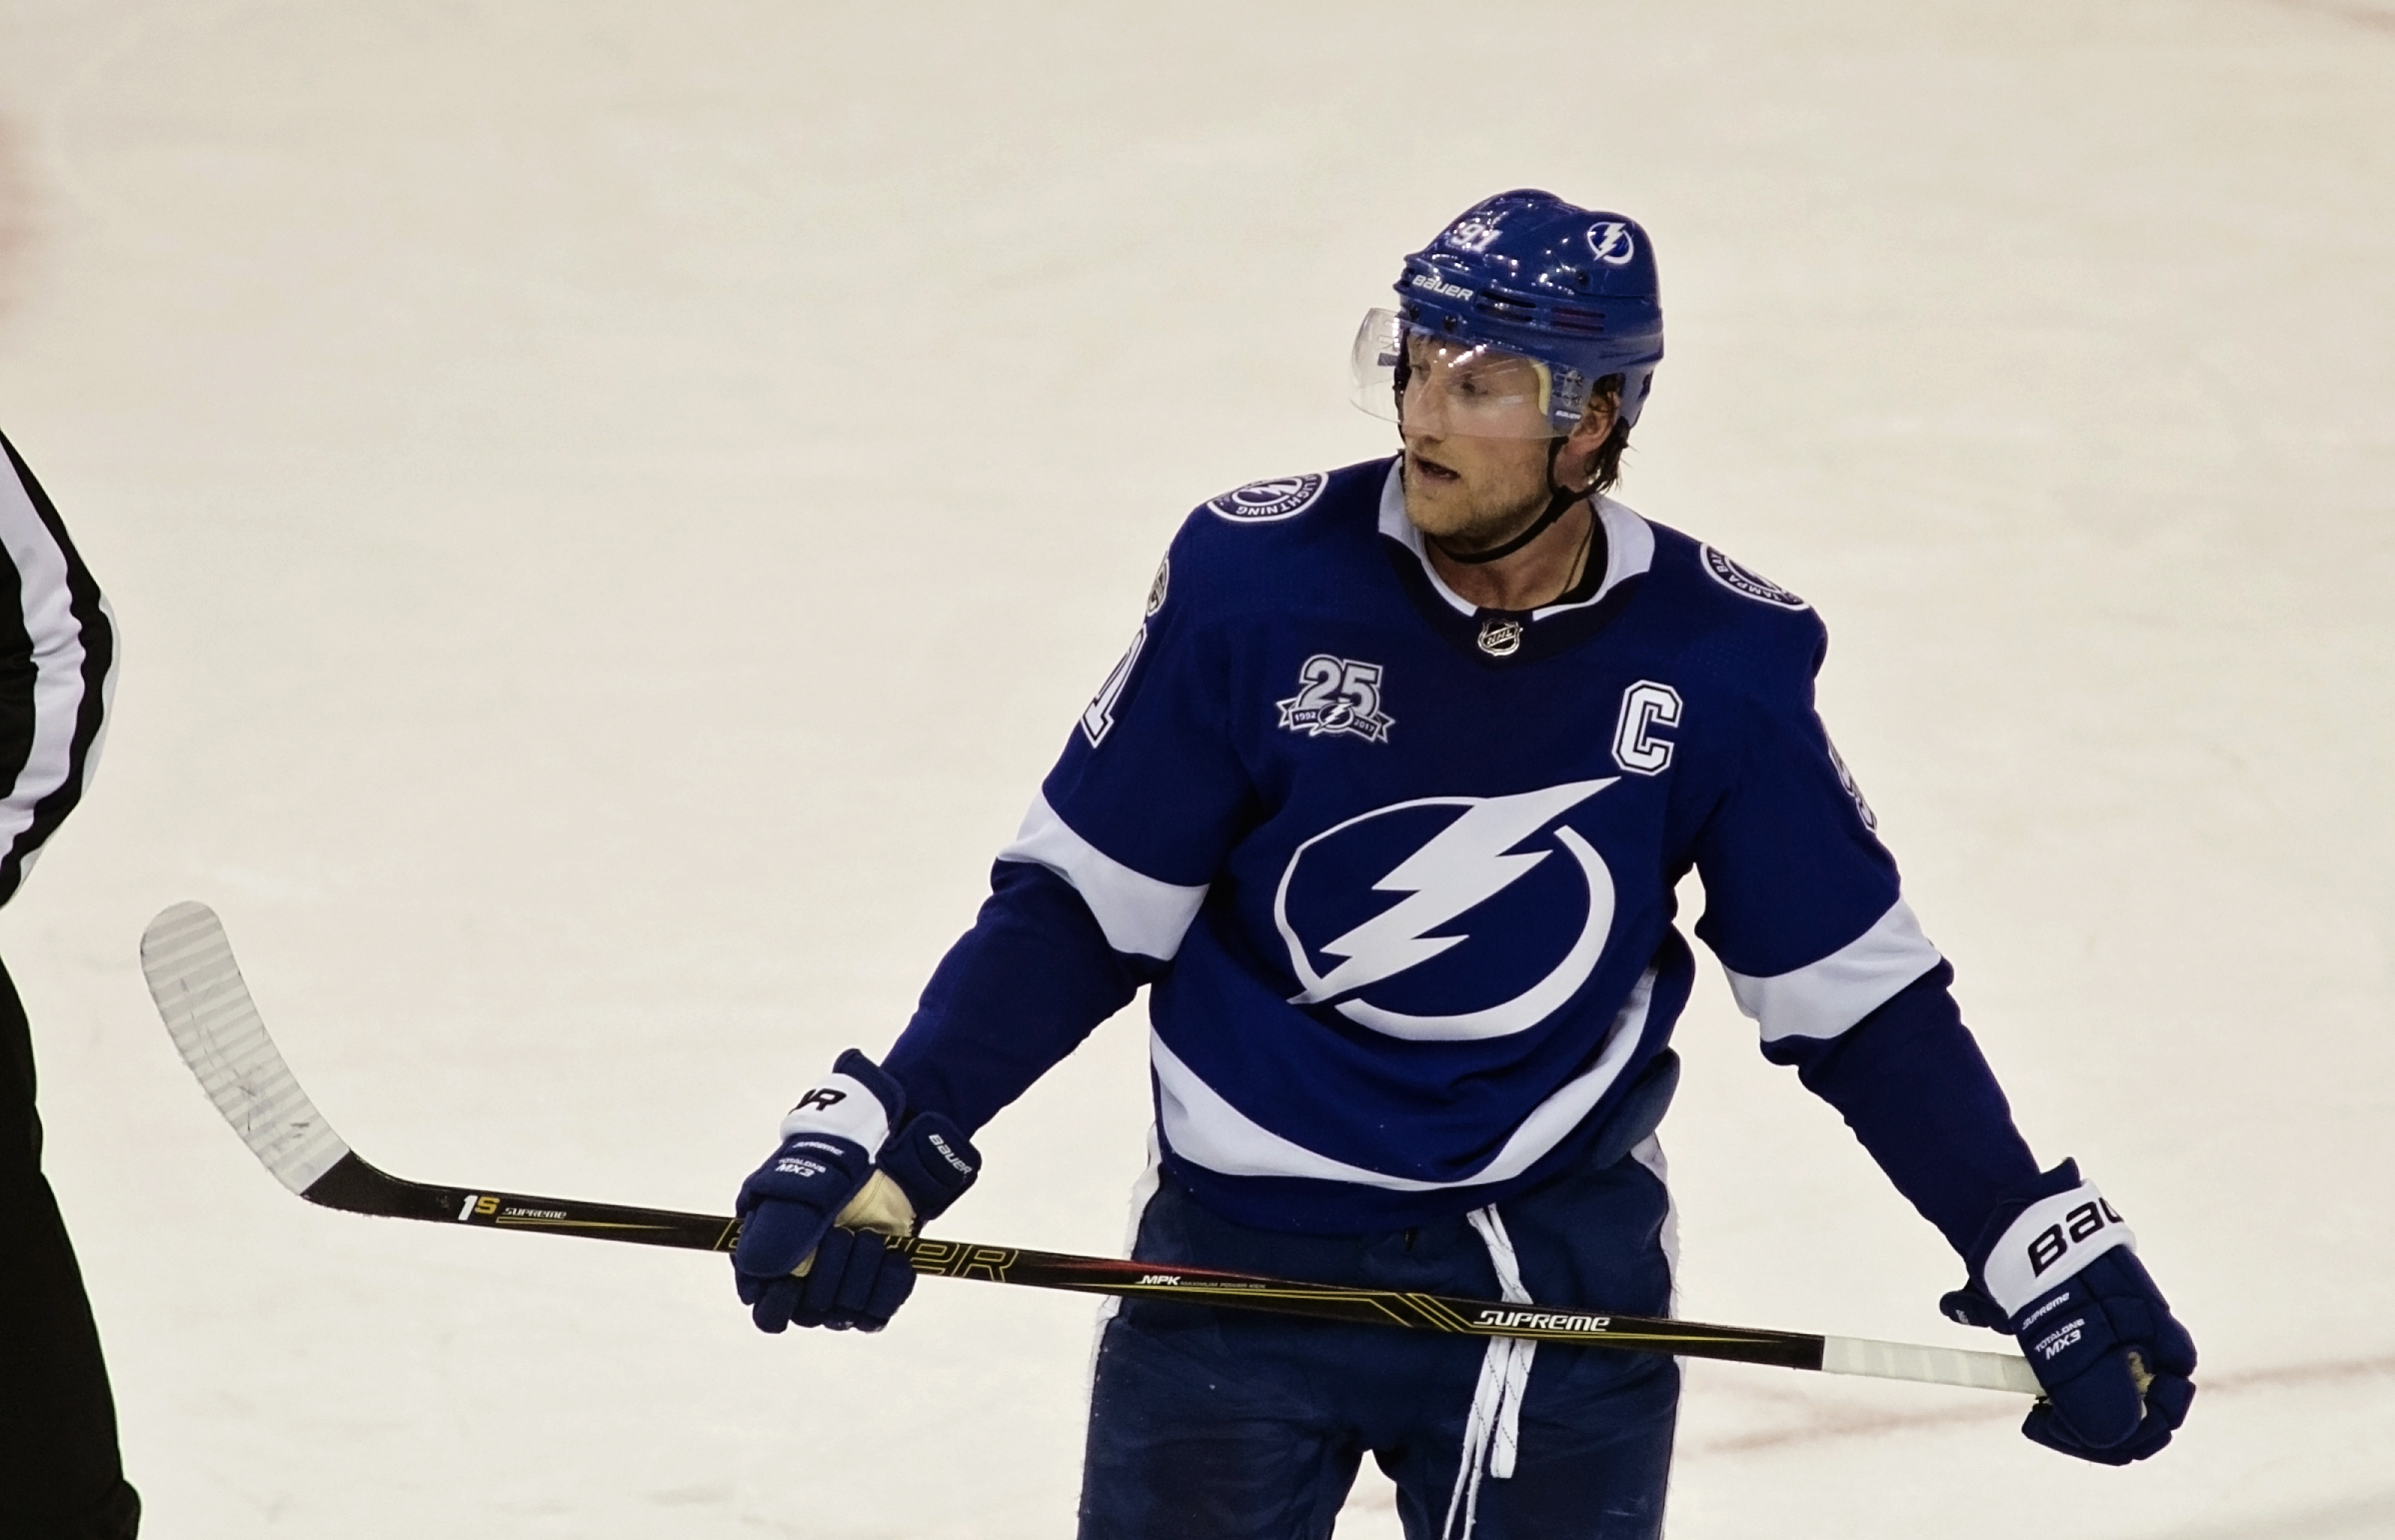 Stamkos leads the league in scoring./CARMEN MANDATO